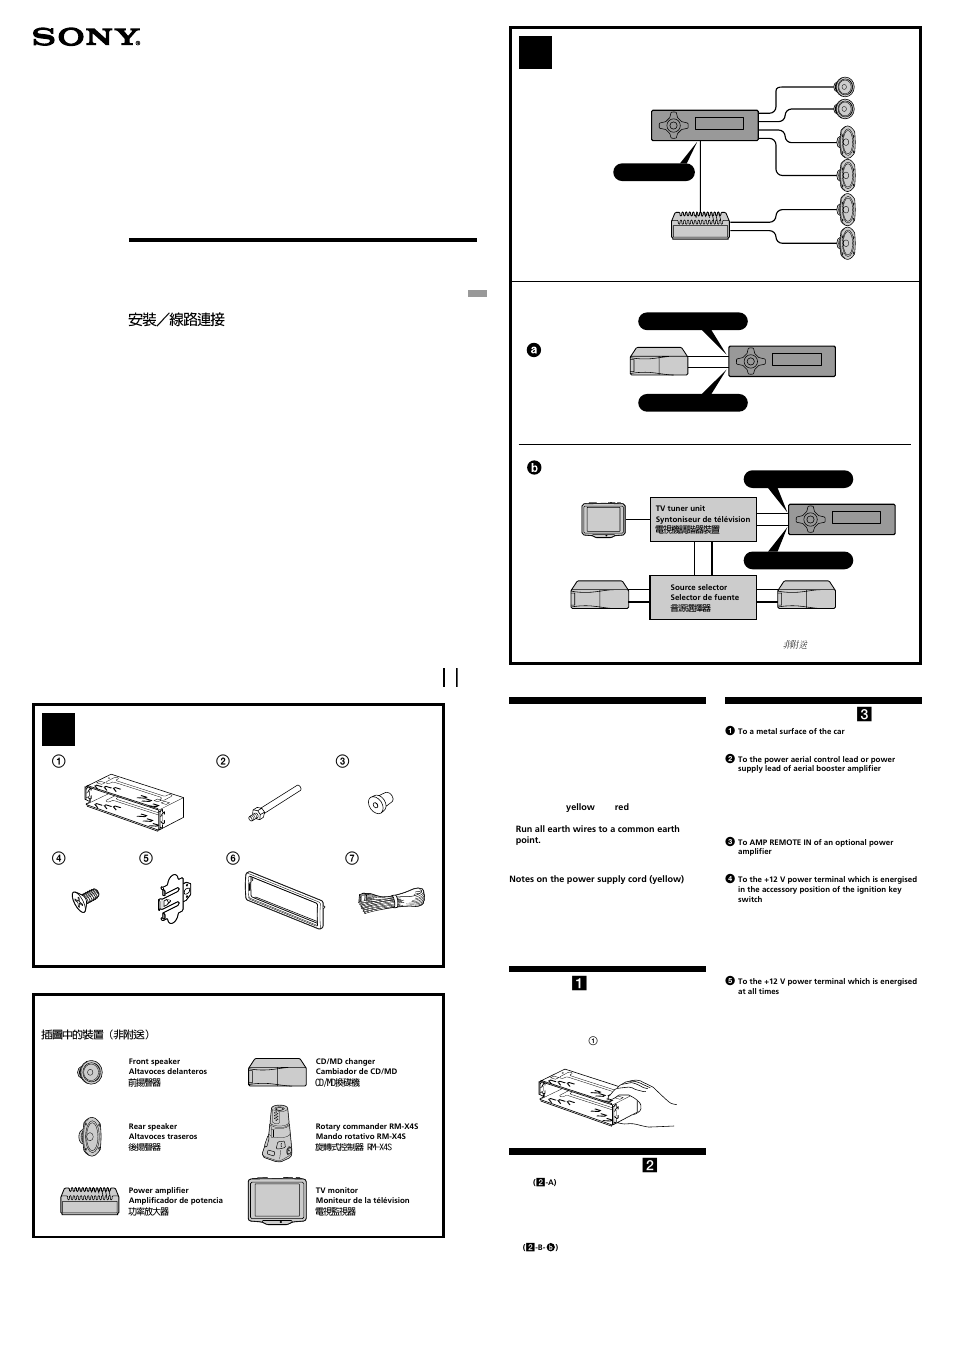 Sony Xplod Car Stereo Wiring Diagram Manual Library 52wx4 For A Cd Player Audio Service Array Xr Ca620x User 4 Pages